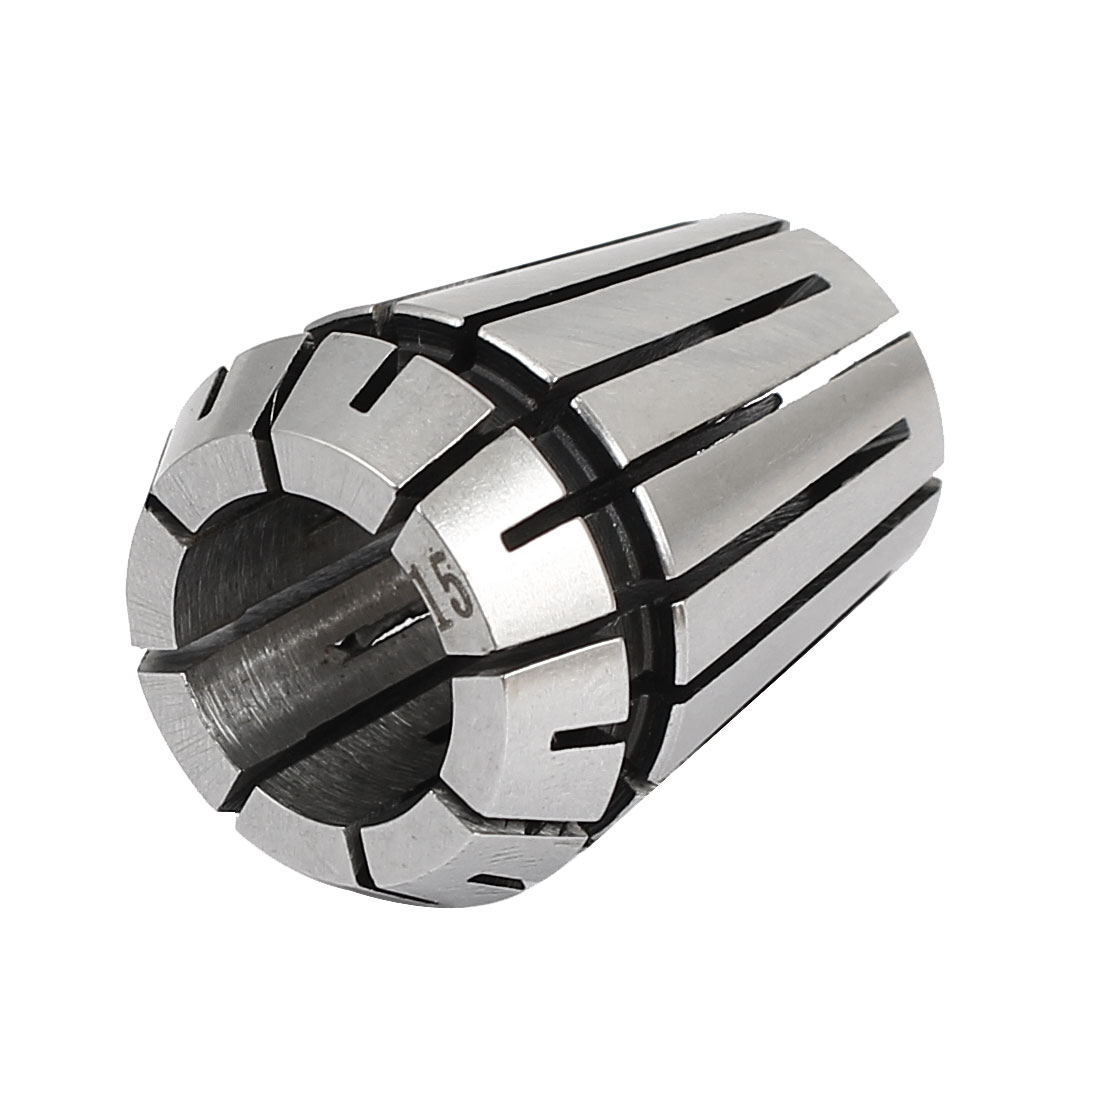 ER25 15mm Clamping Dia CNC Engraving Milling Machine Spring Collet